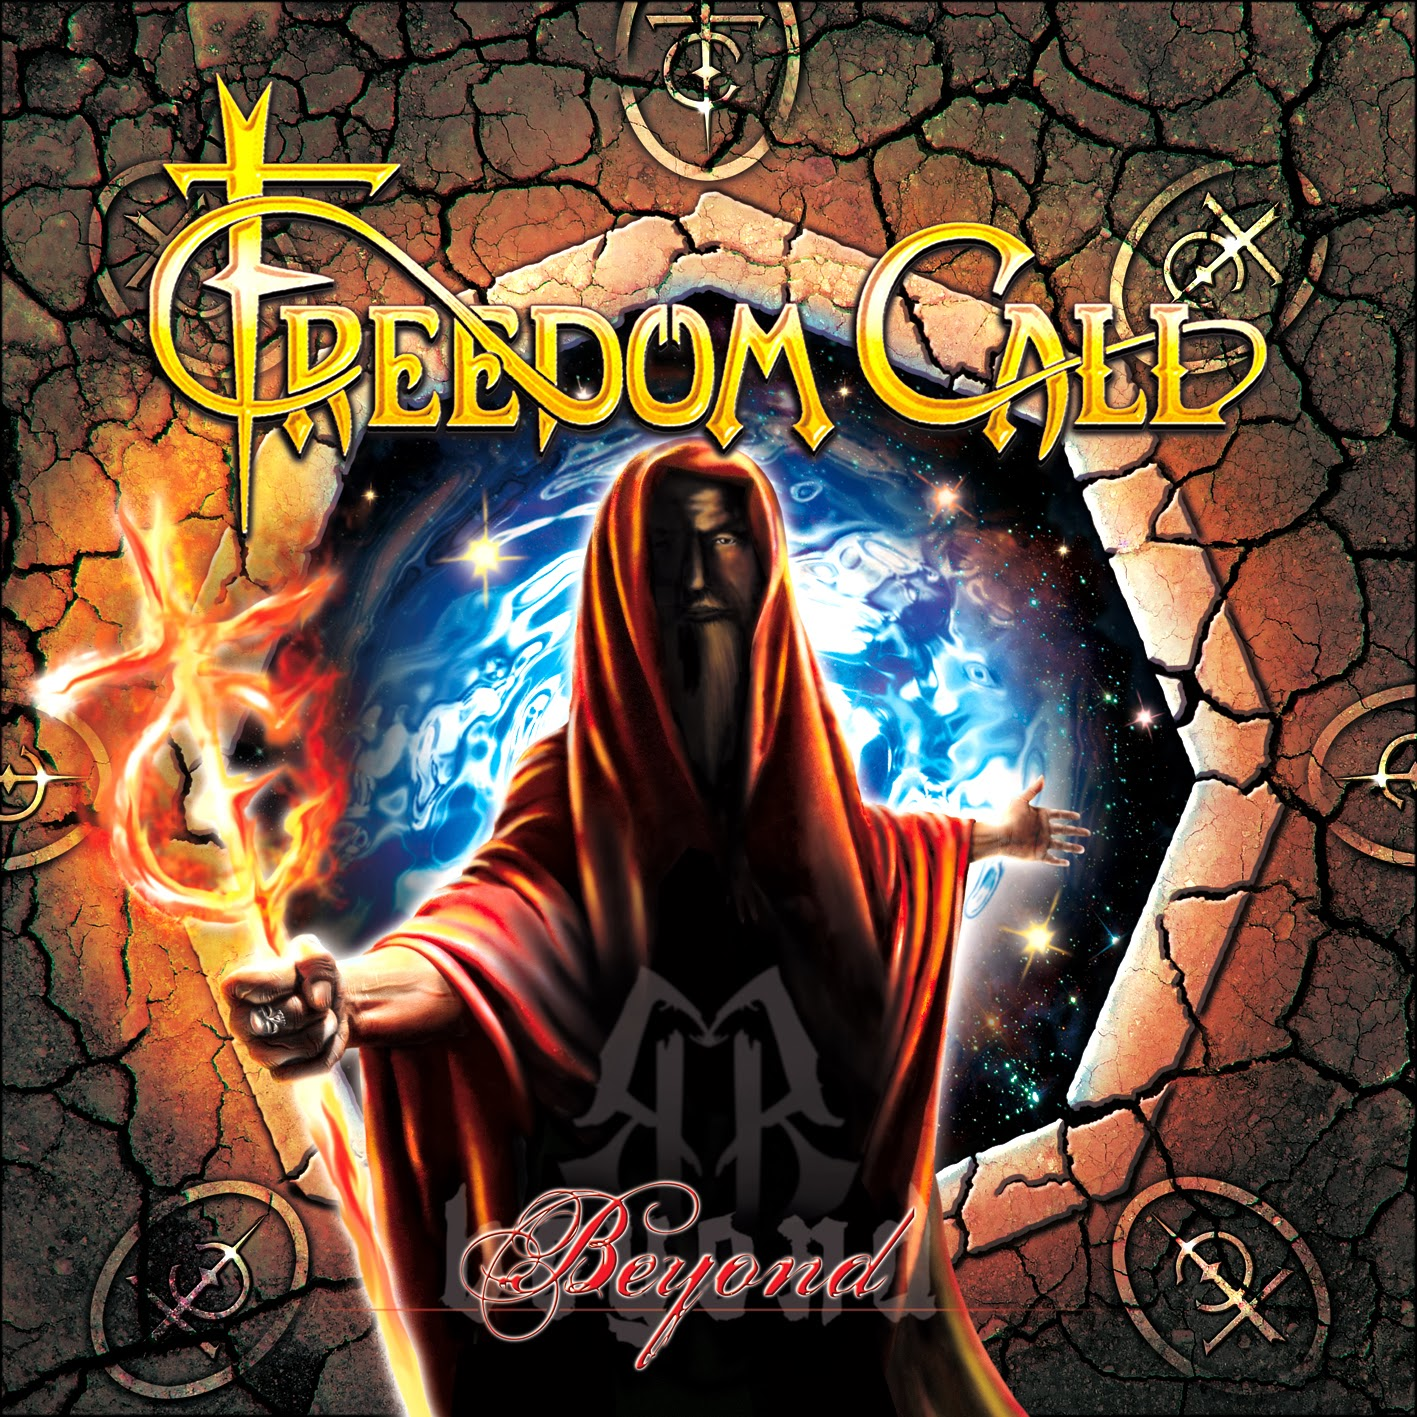 http://rock-and-metal-4-you.blogspot.de/2014/01/cd-review-freedom-call-beyond.html